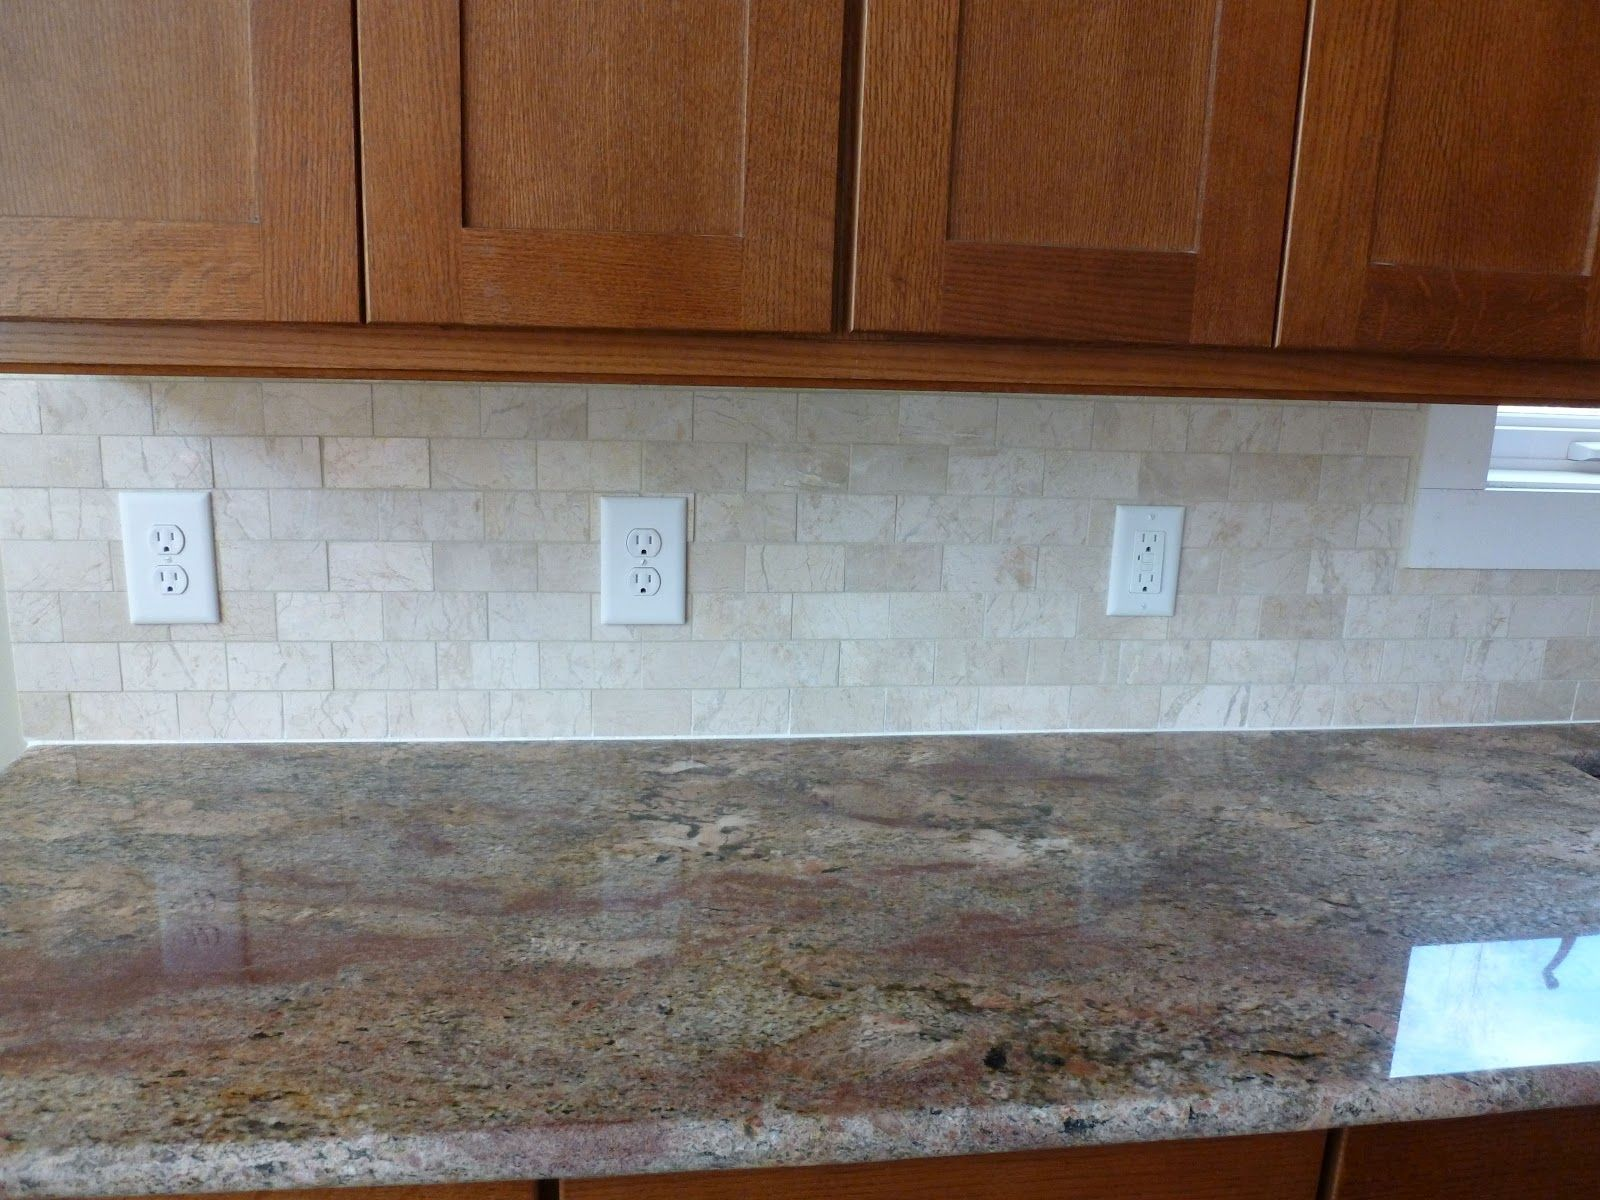 Kitchen Backsplash Subway Tile Patterns marble subway tile backsplash | bob and flora's new house